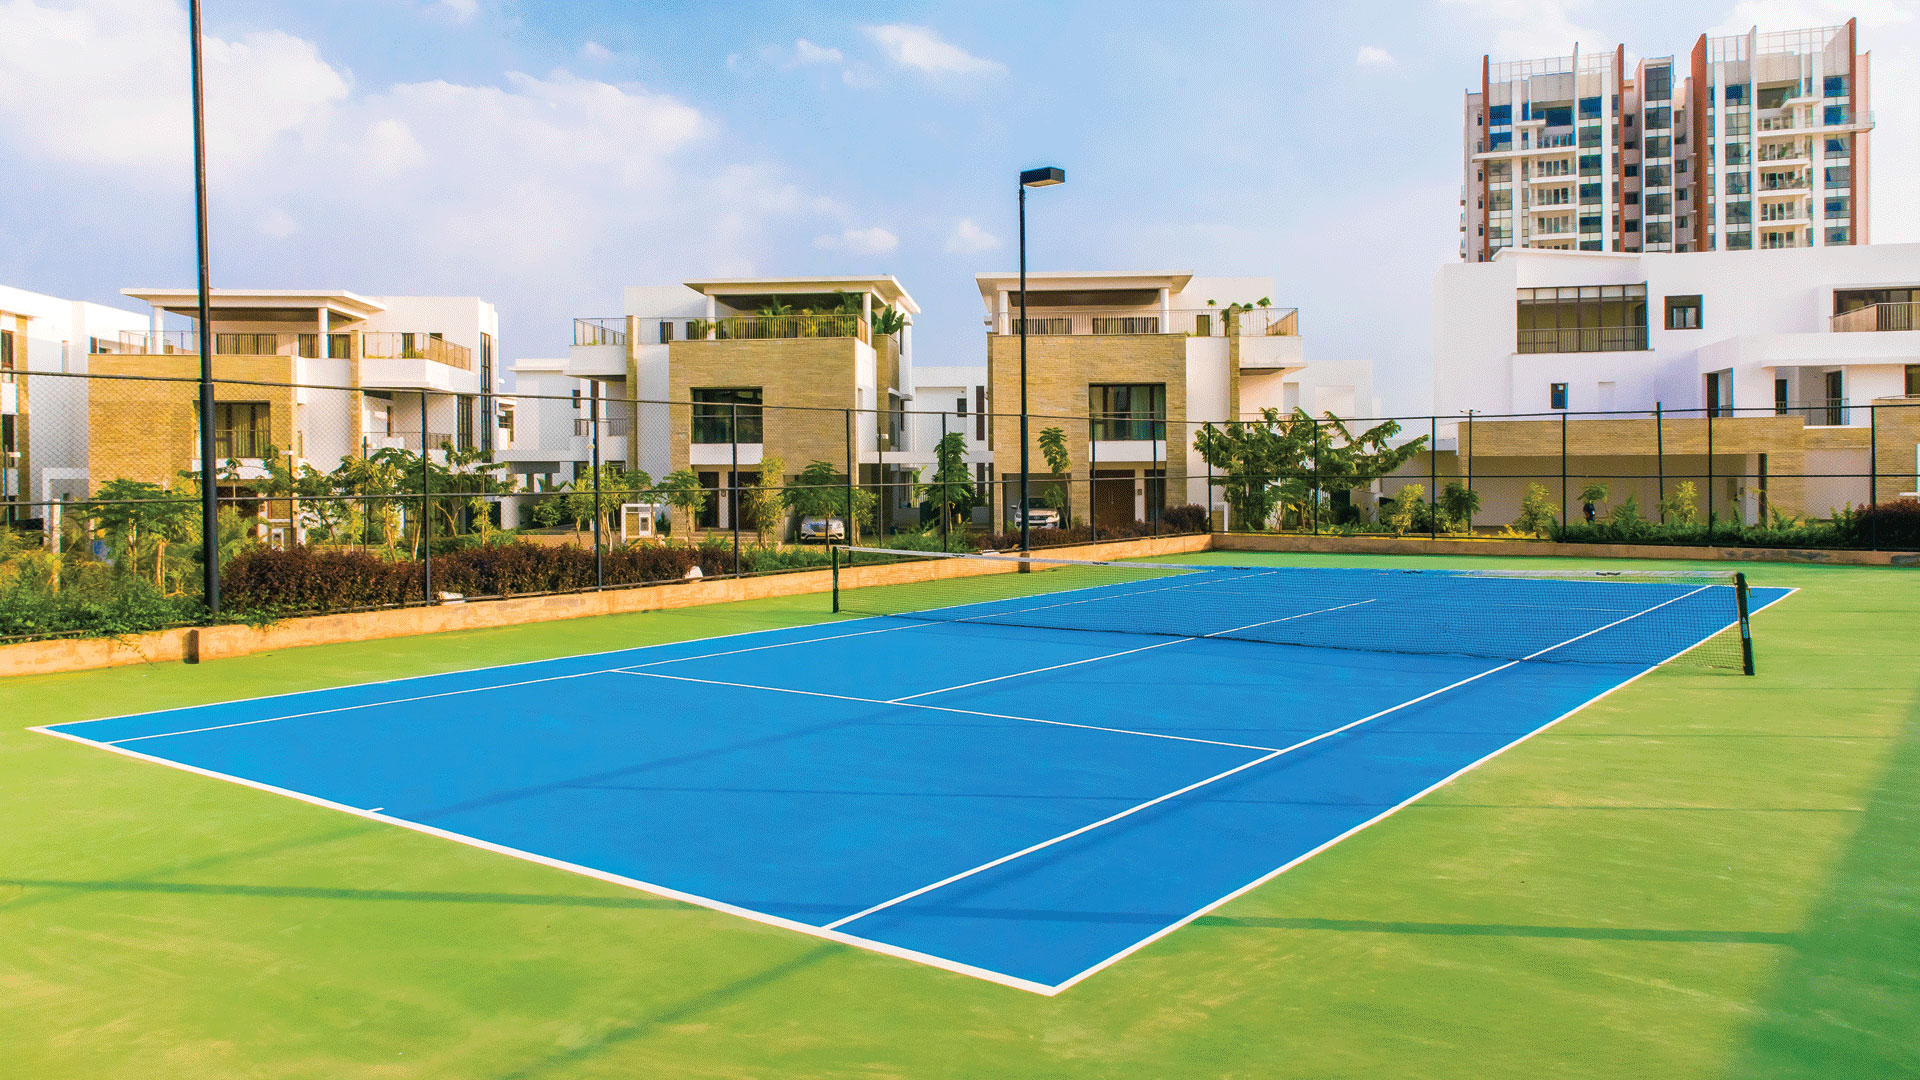 prestige-white-meadows-Villas-in- Whitefield-Bangalore-Image-04